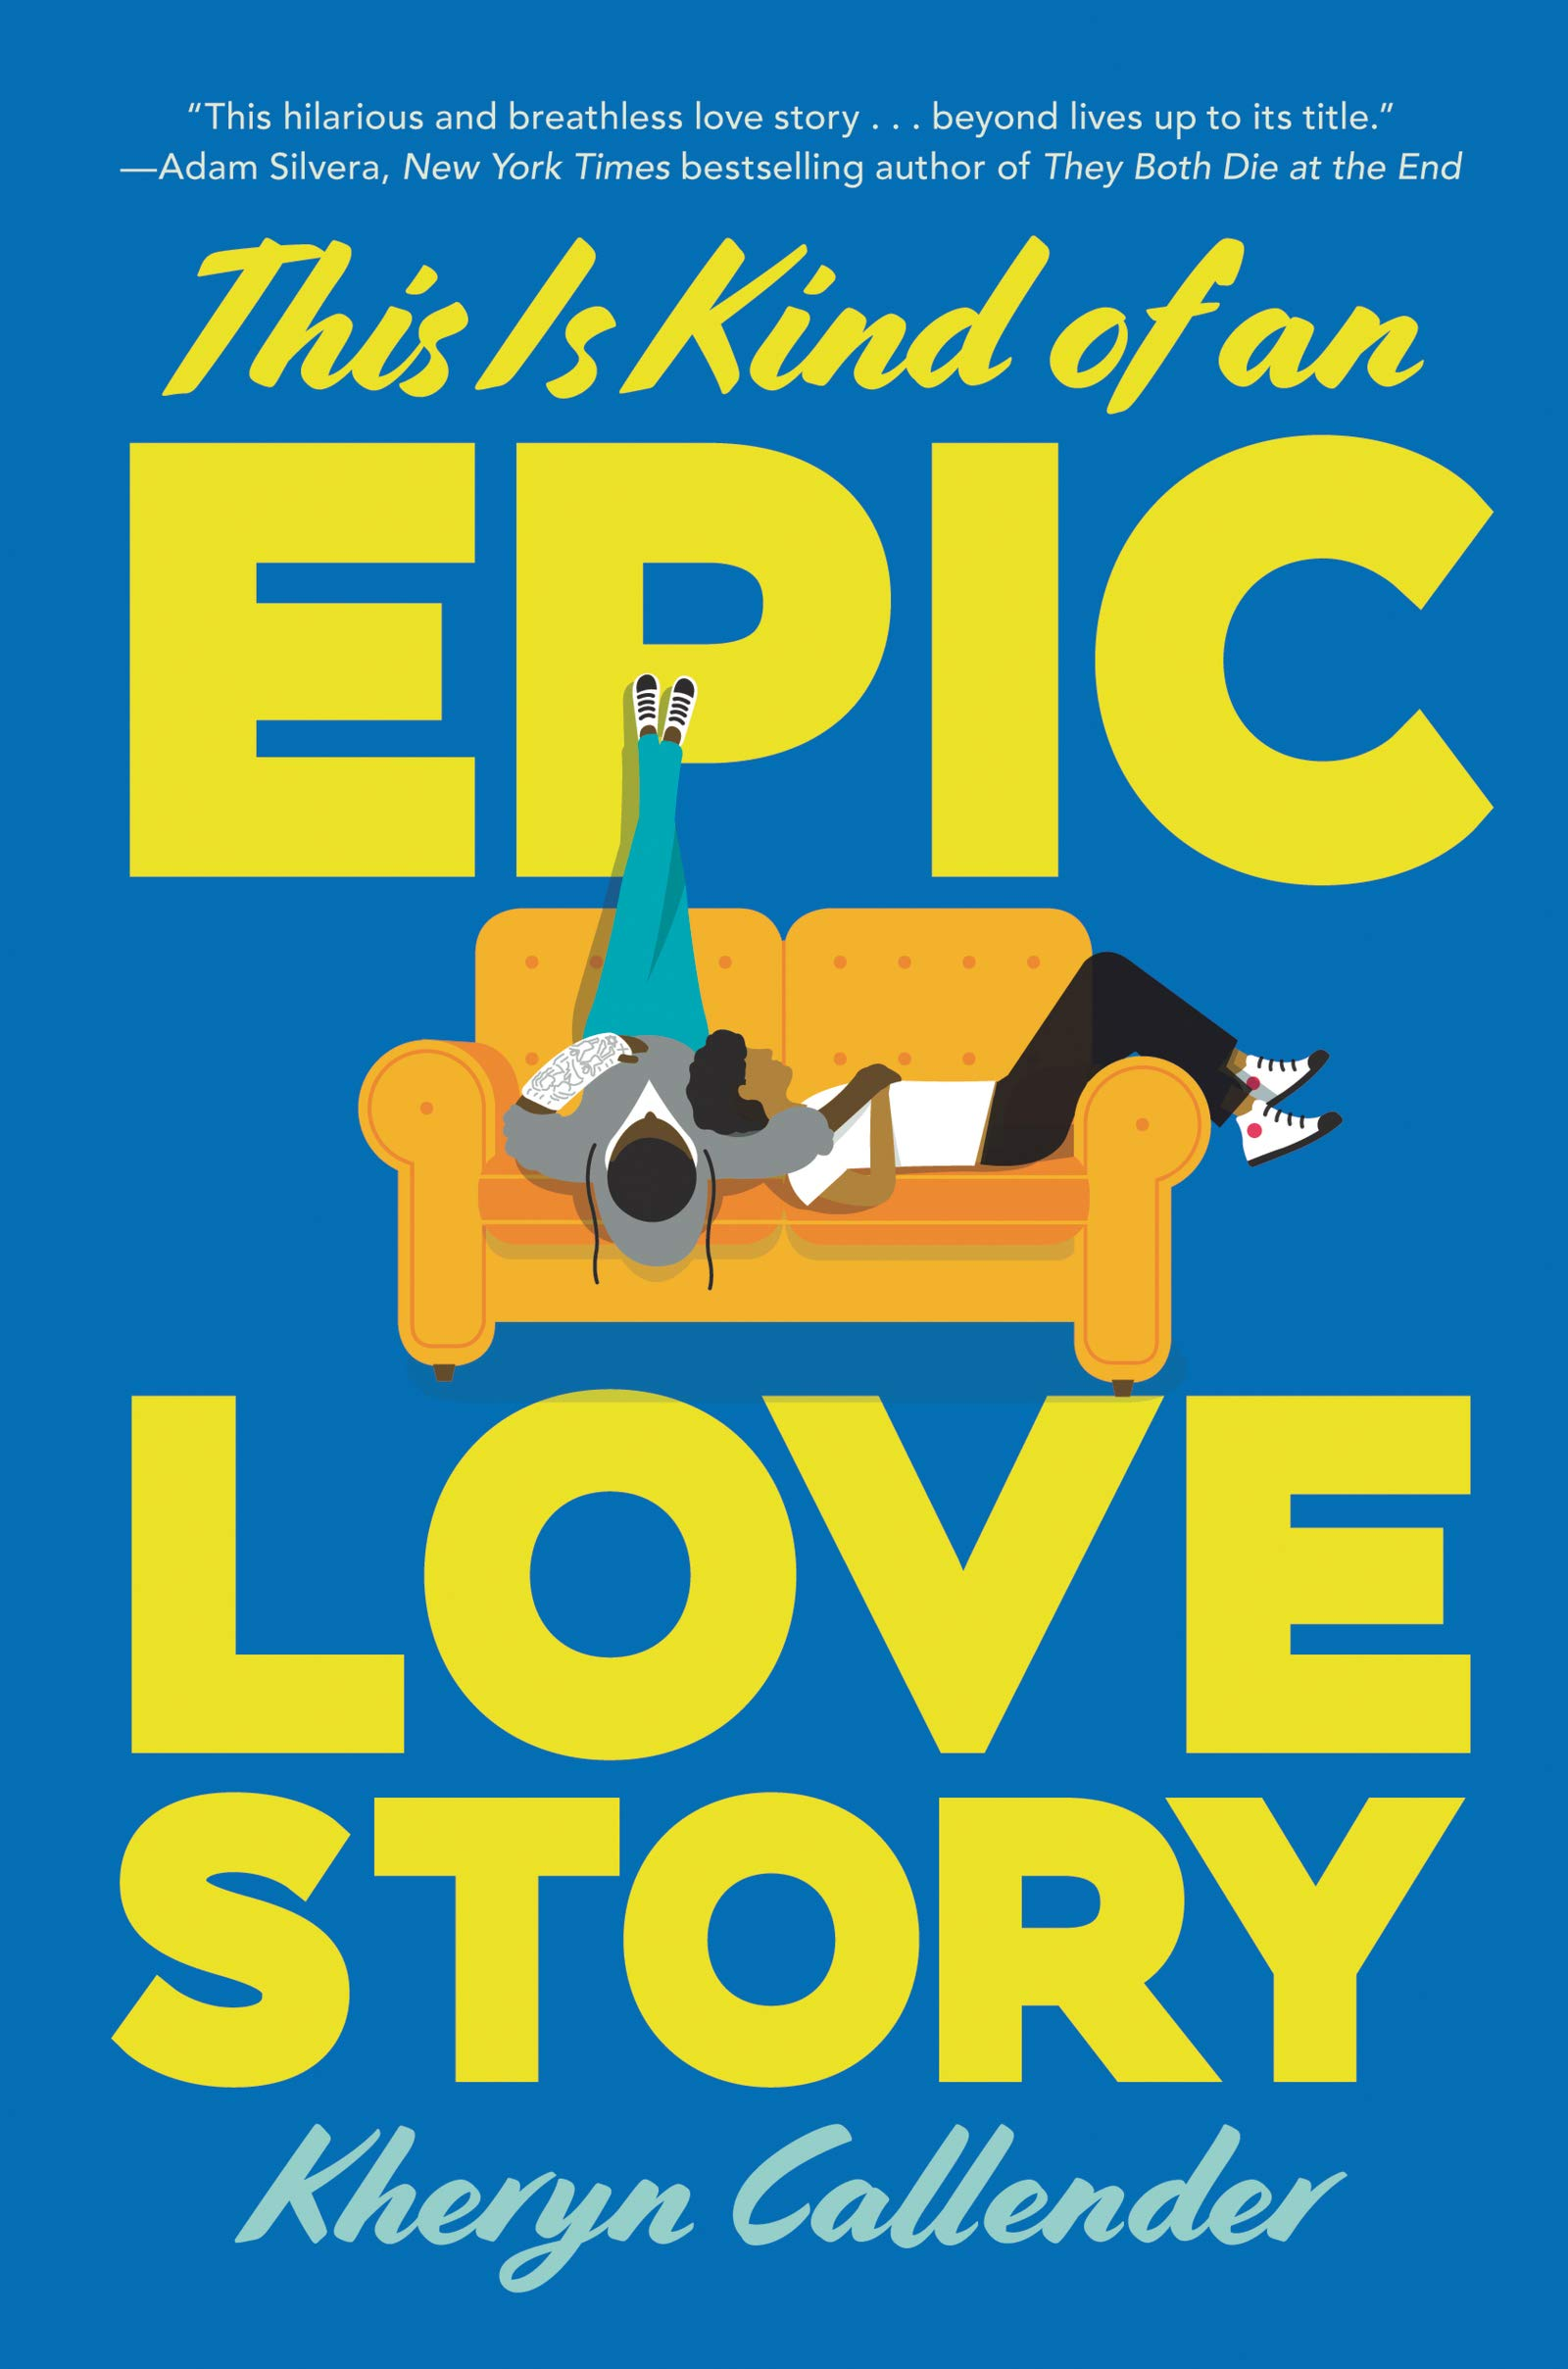 cover of This is Kind of an Epic Love Story, featuring a graphic illustration of two besties chillin' on a love seat in the chillest way